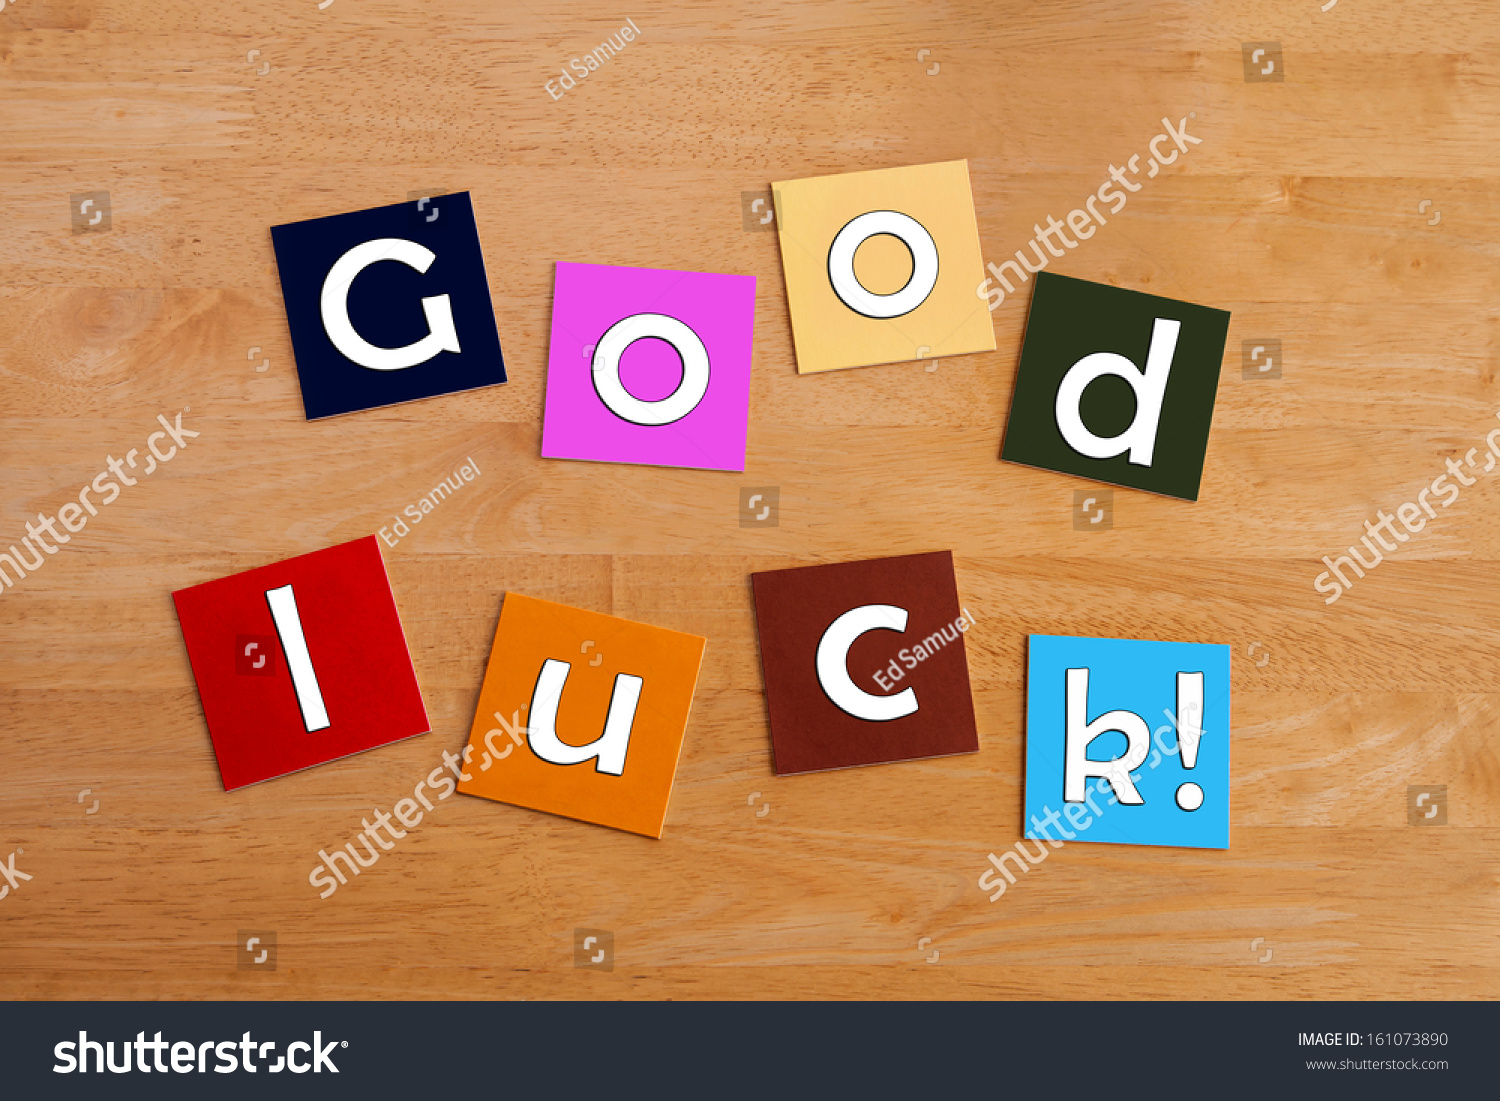 Good Luck Best Wishes Sign Greeting Photo 161073890 – Good Luck Cards to Print